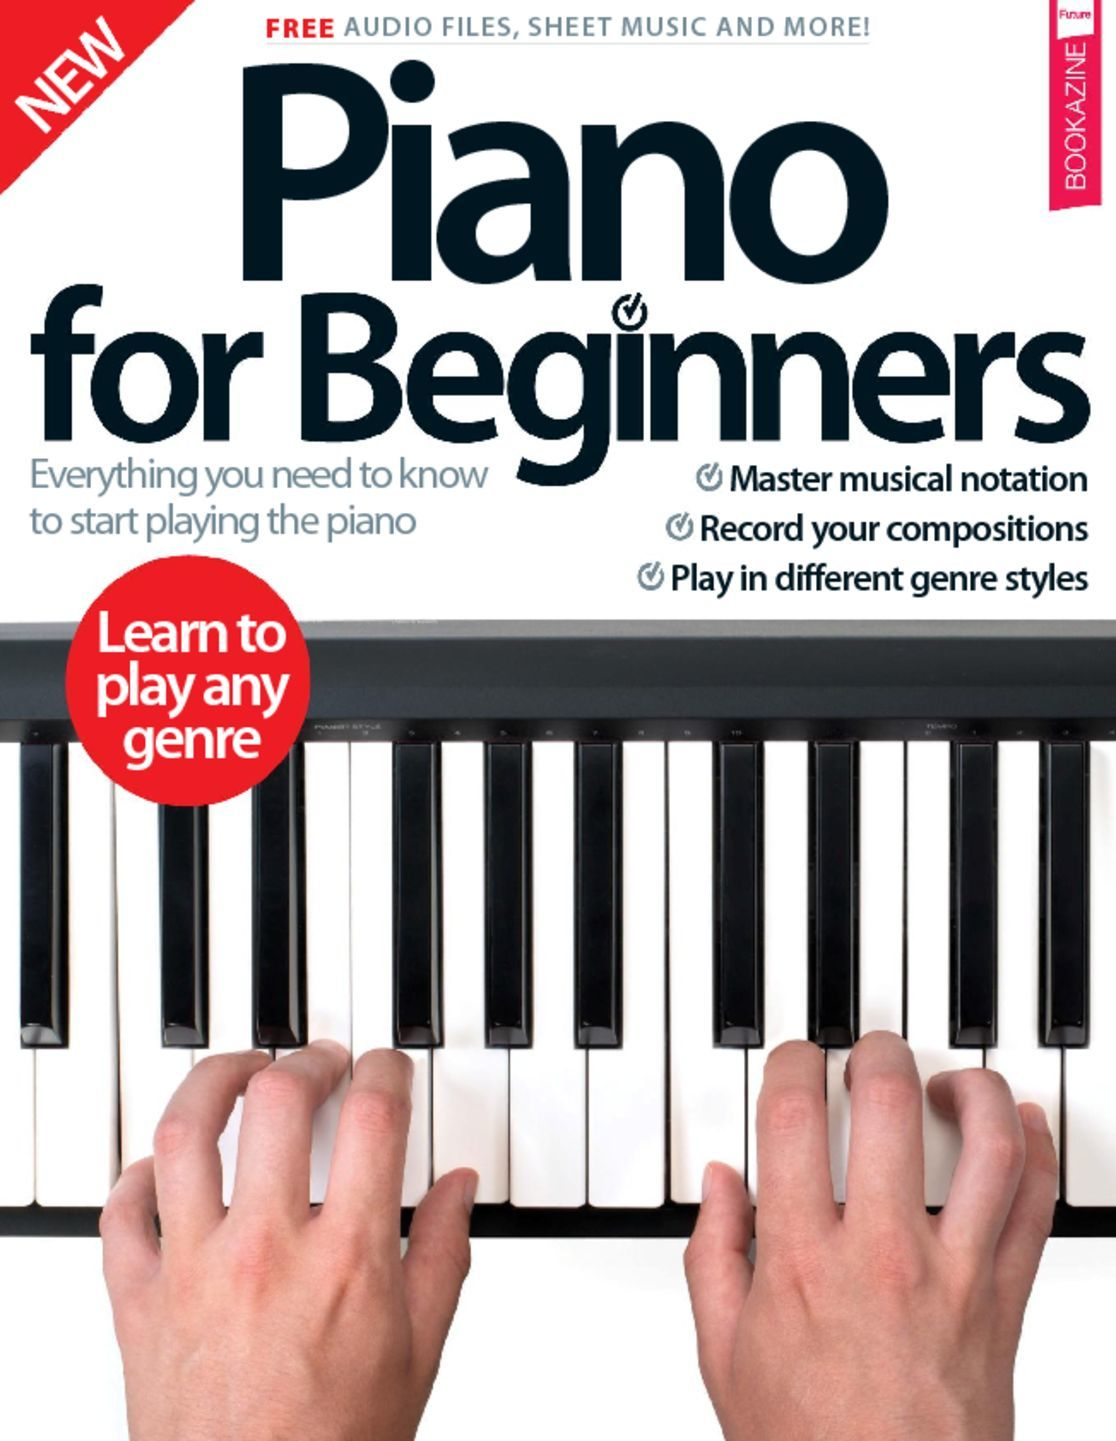 Piano For Beginners (Digital)